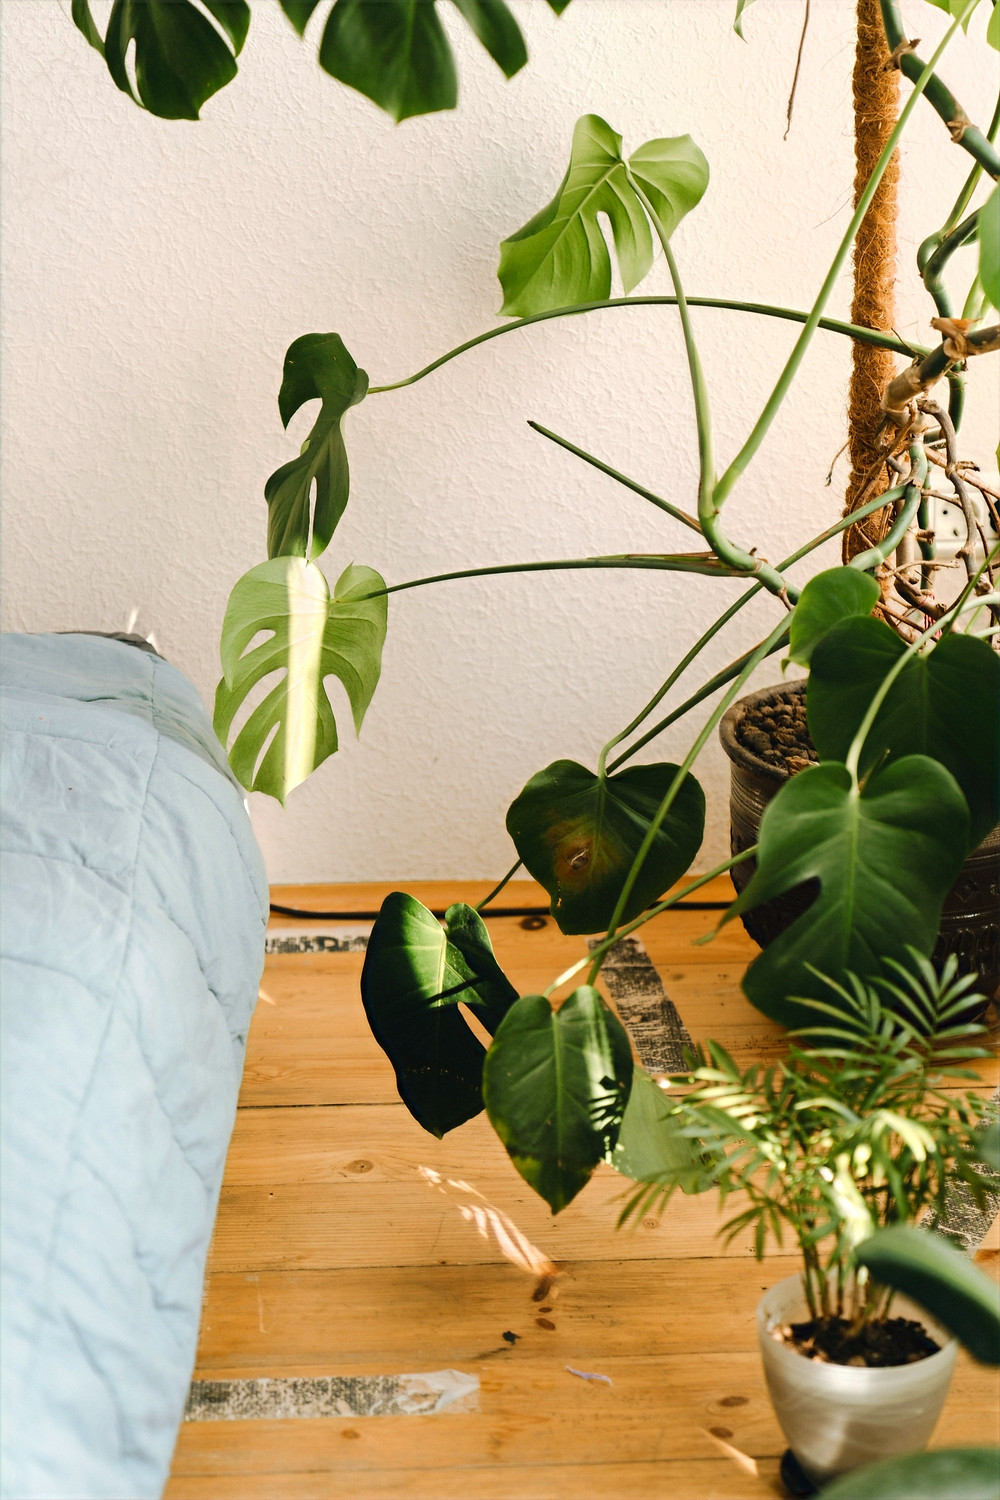 A Swiss Cheese Plant is placed on a wood floor next to a bed with blue sheets.